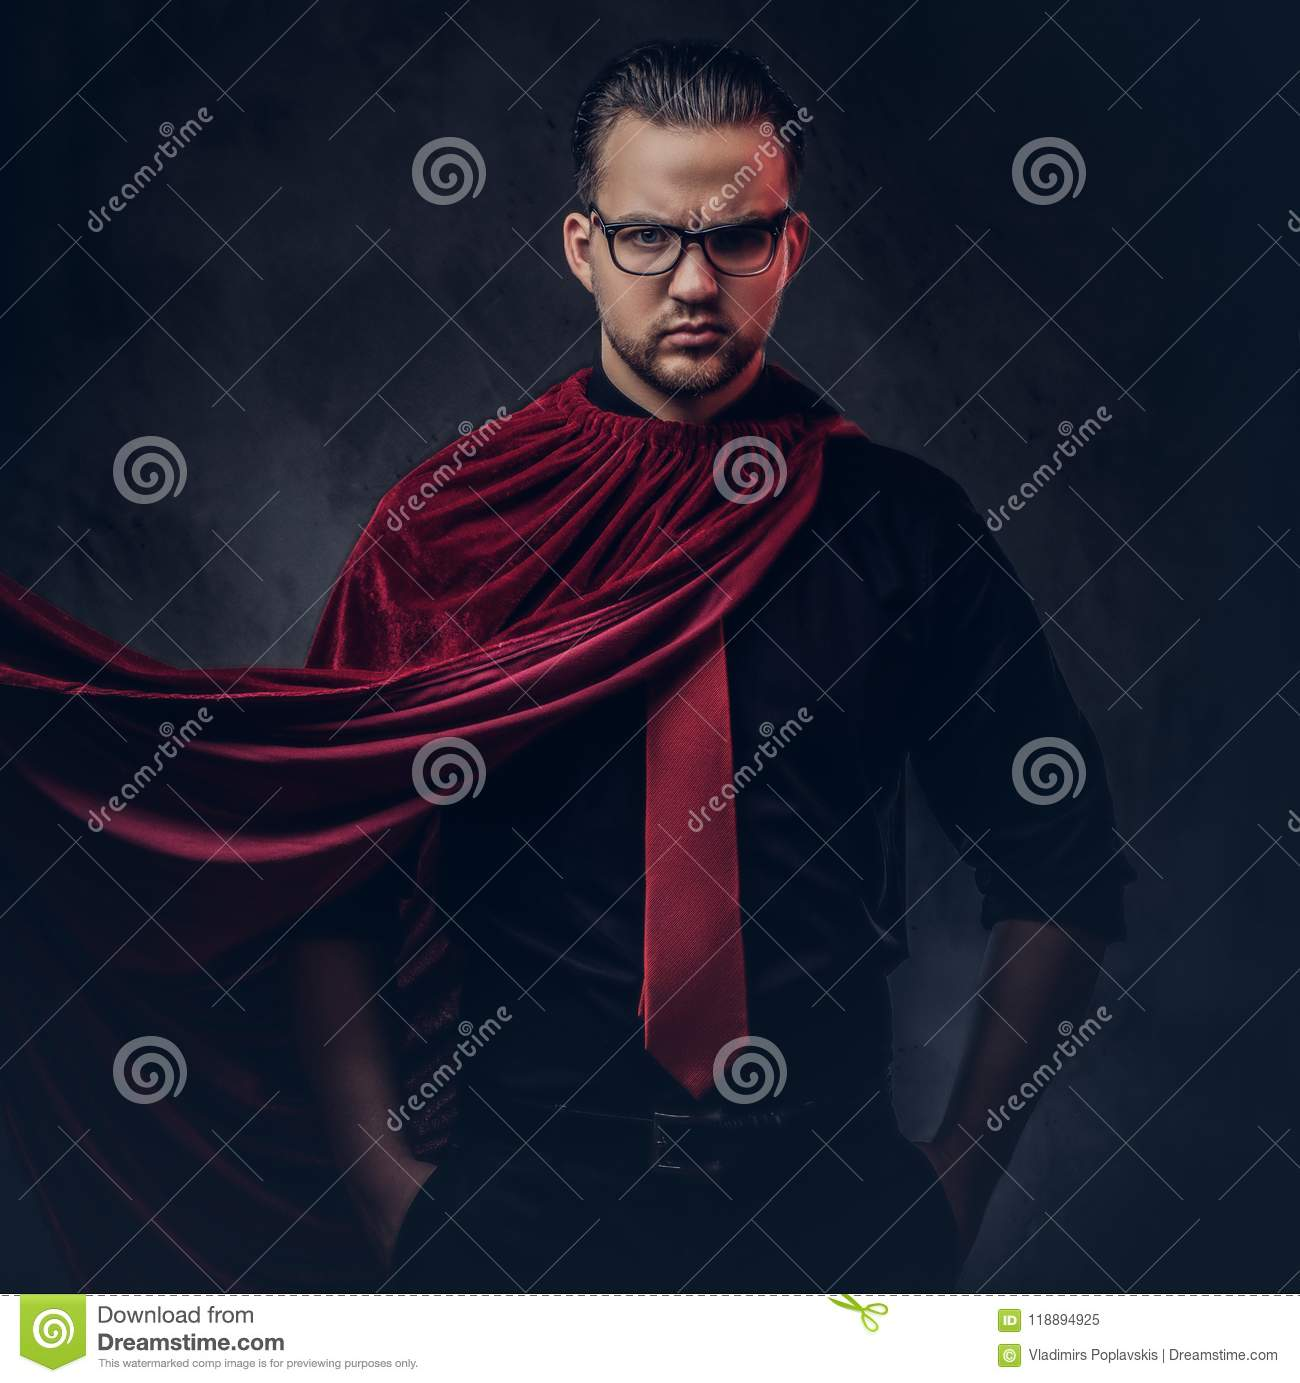 0d1ac4e56531 Portrait of a genius villain superhero in a black shirt with a red tie.